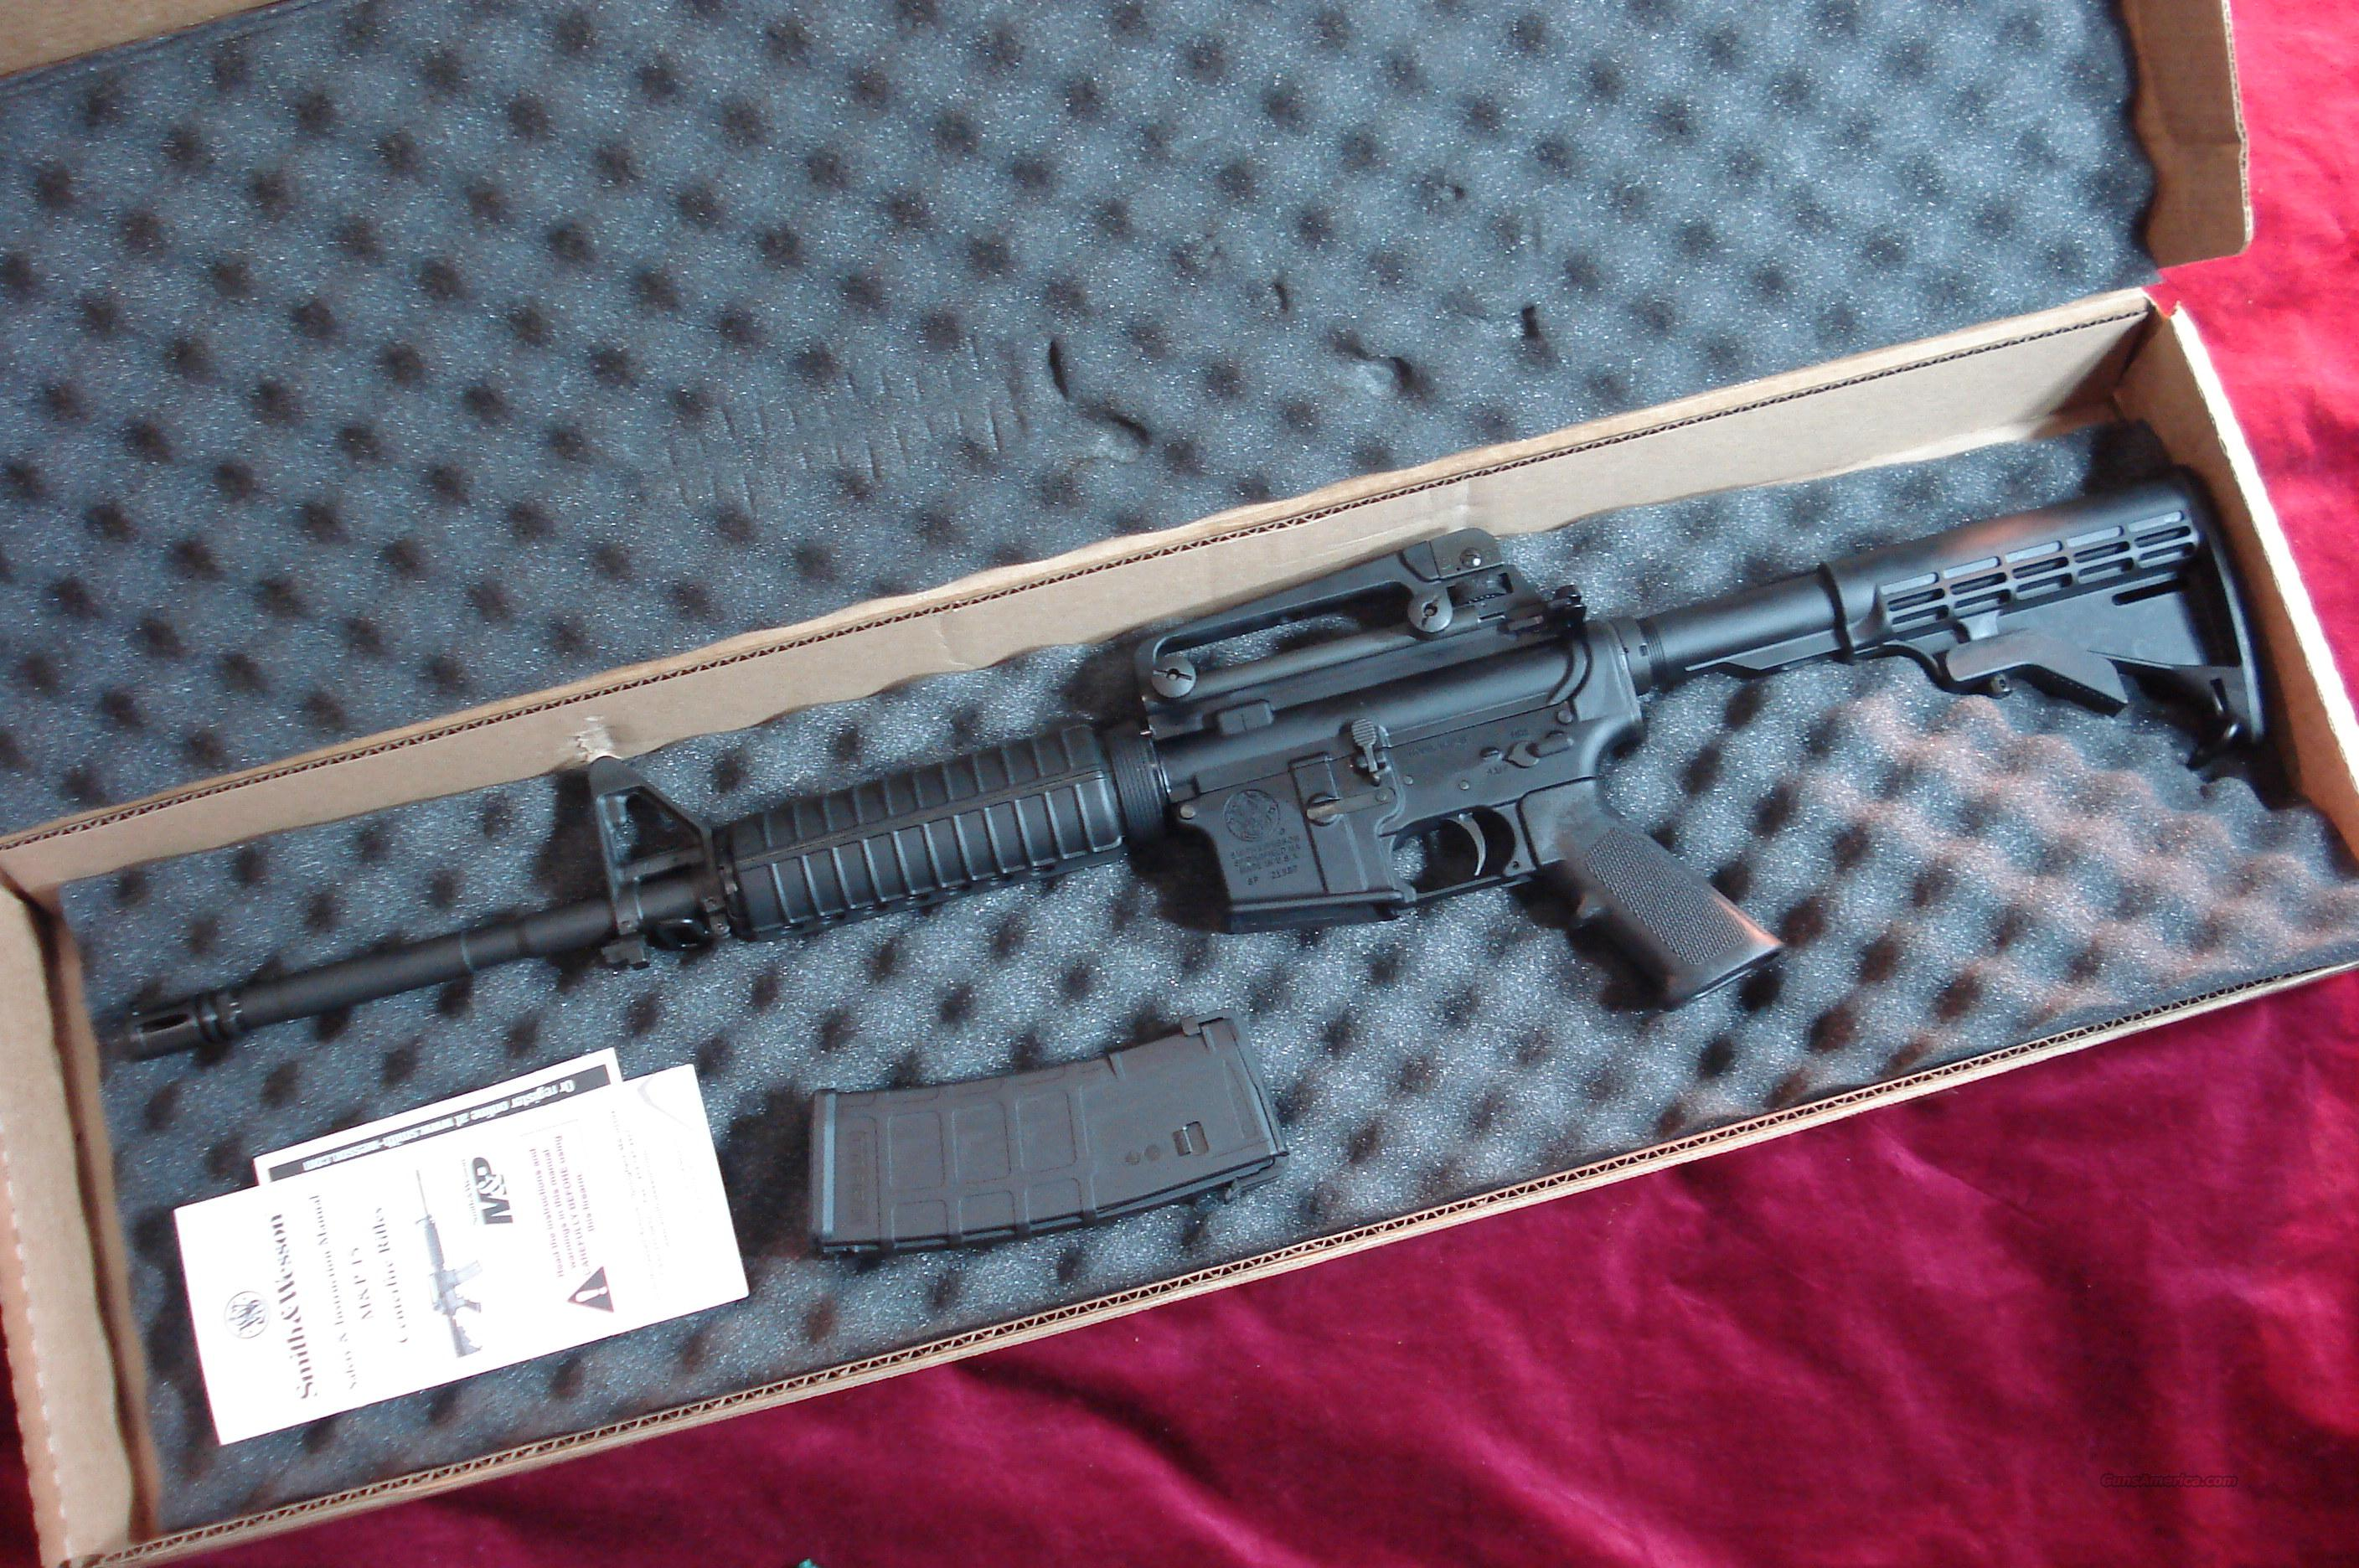 SMITH AND WESSON M&P 15 M4A3 5.56/223CAL. NEW   Guns > Rifles > AR-15 Rifles - Small Manufacturers > Complete Rifle